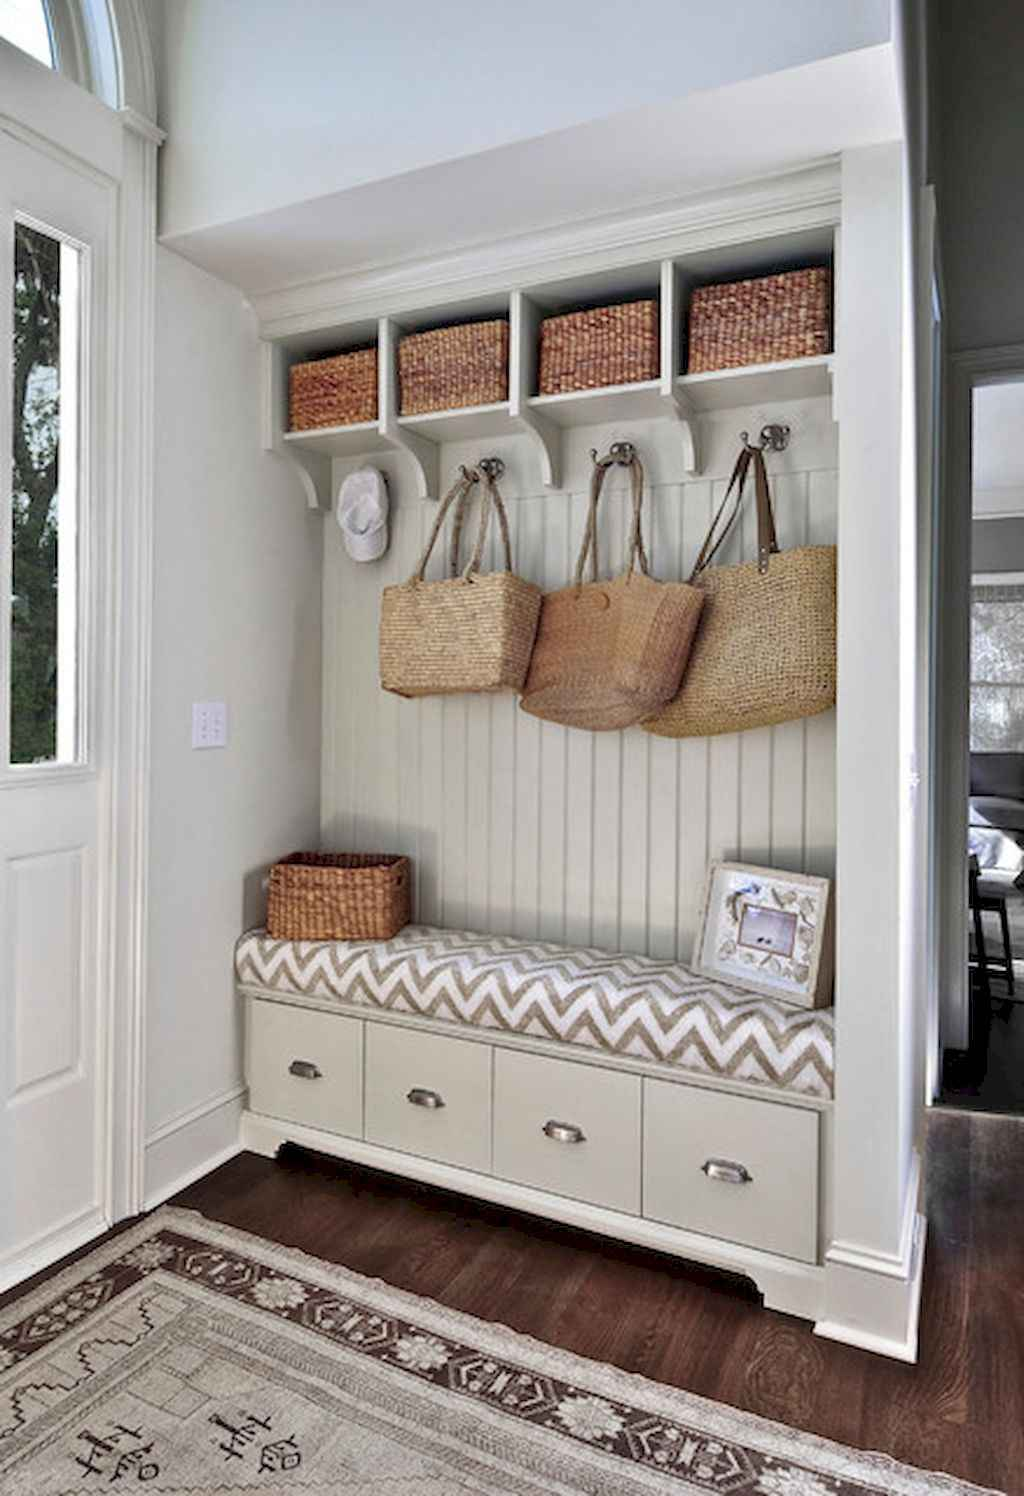 65 Cool Mudroom Design Ideas and Remodel (19)